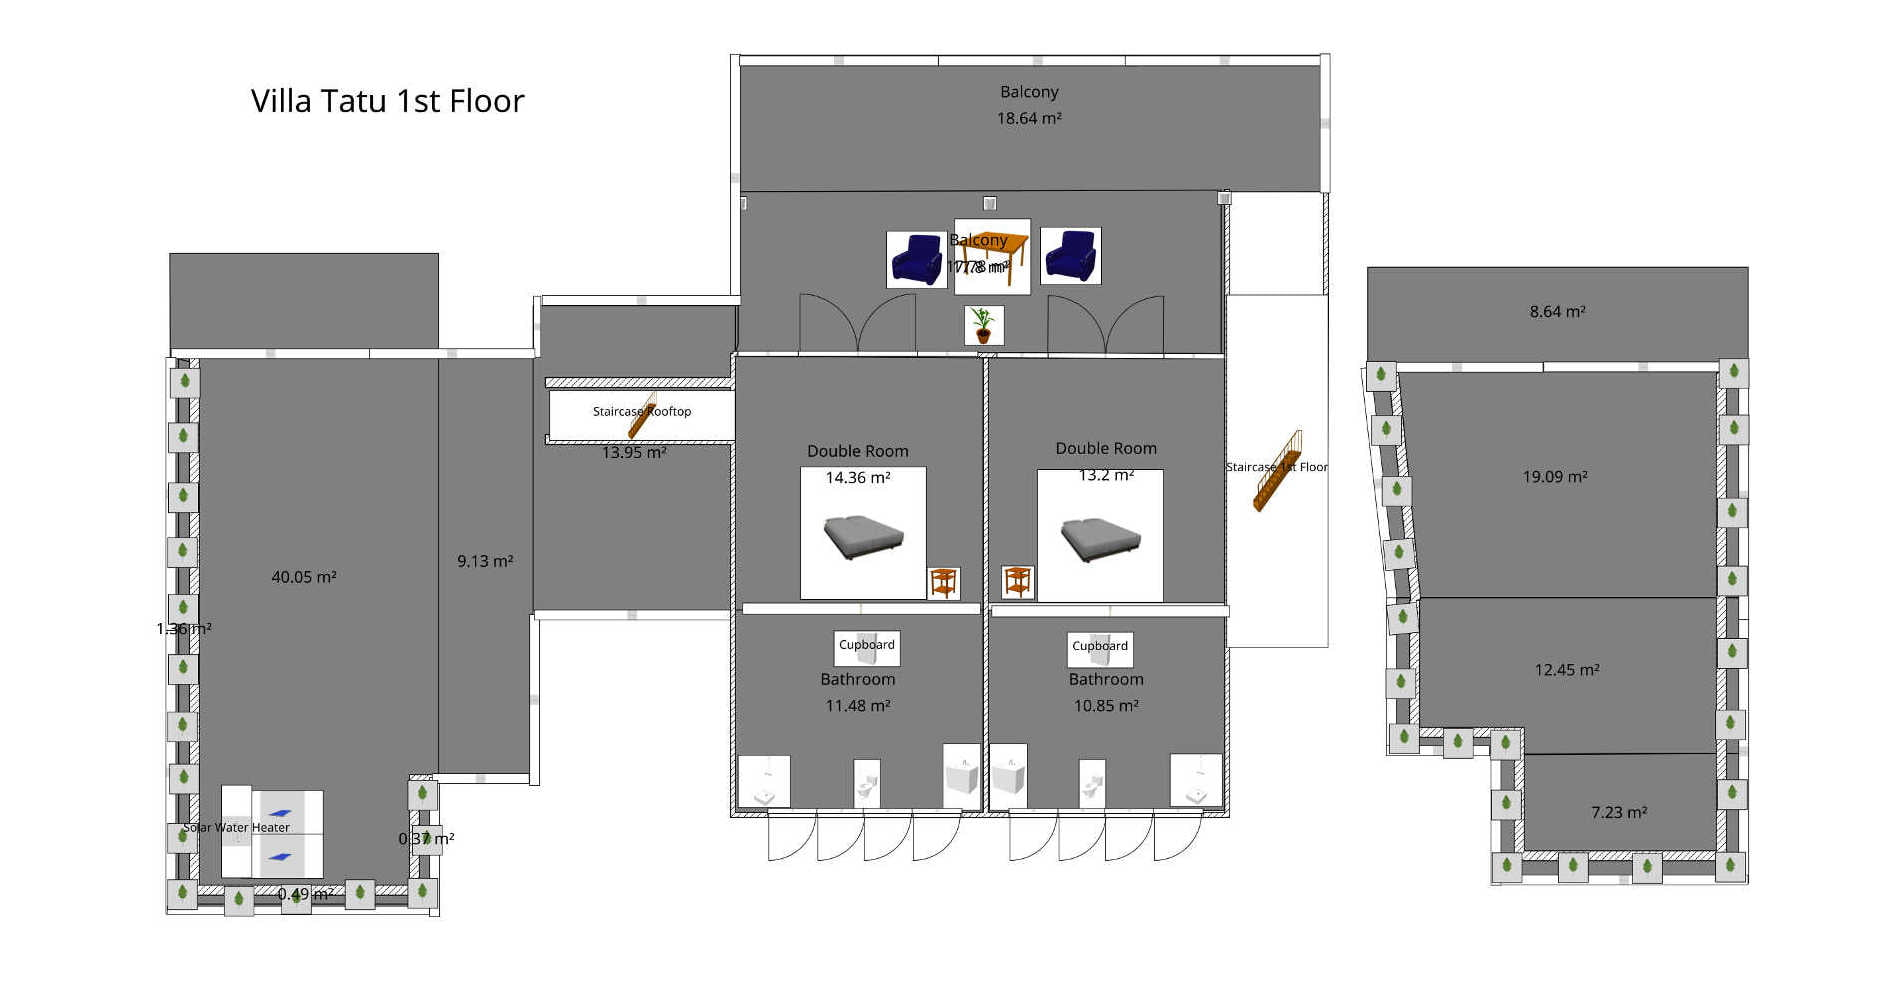 Floor Plan Villa Tatu 1st Floor